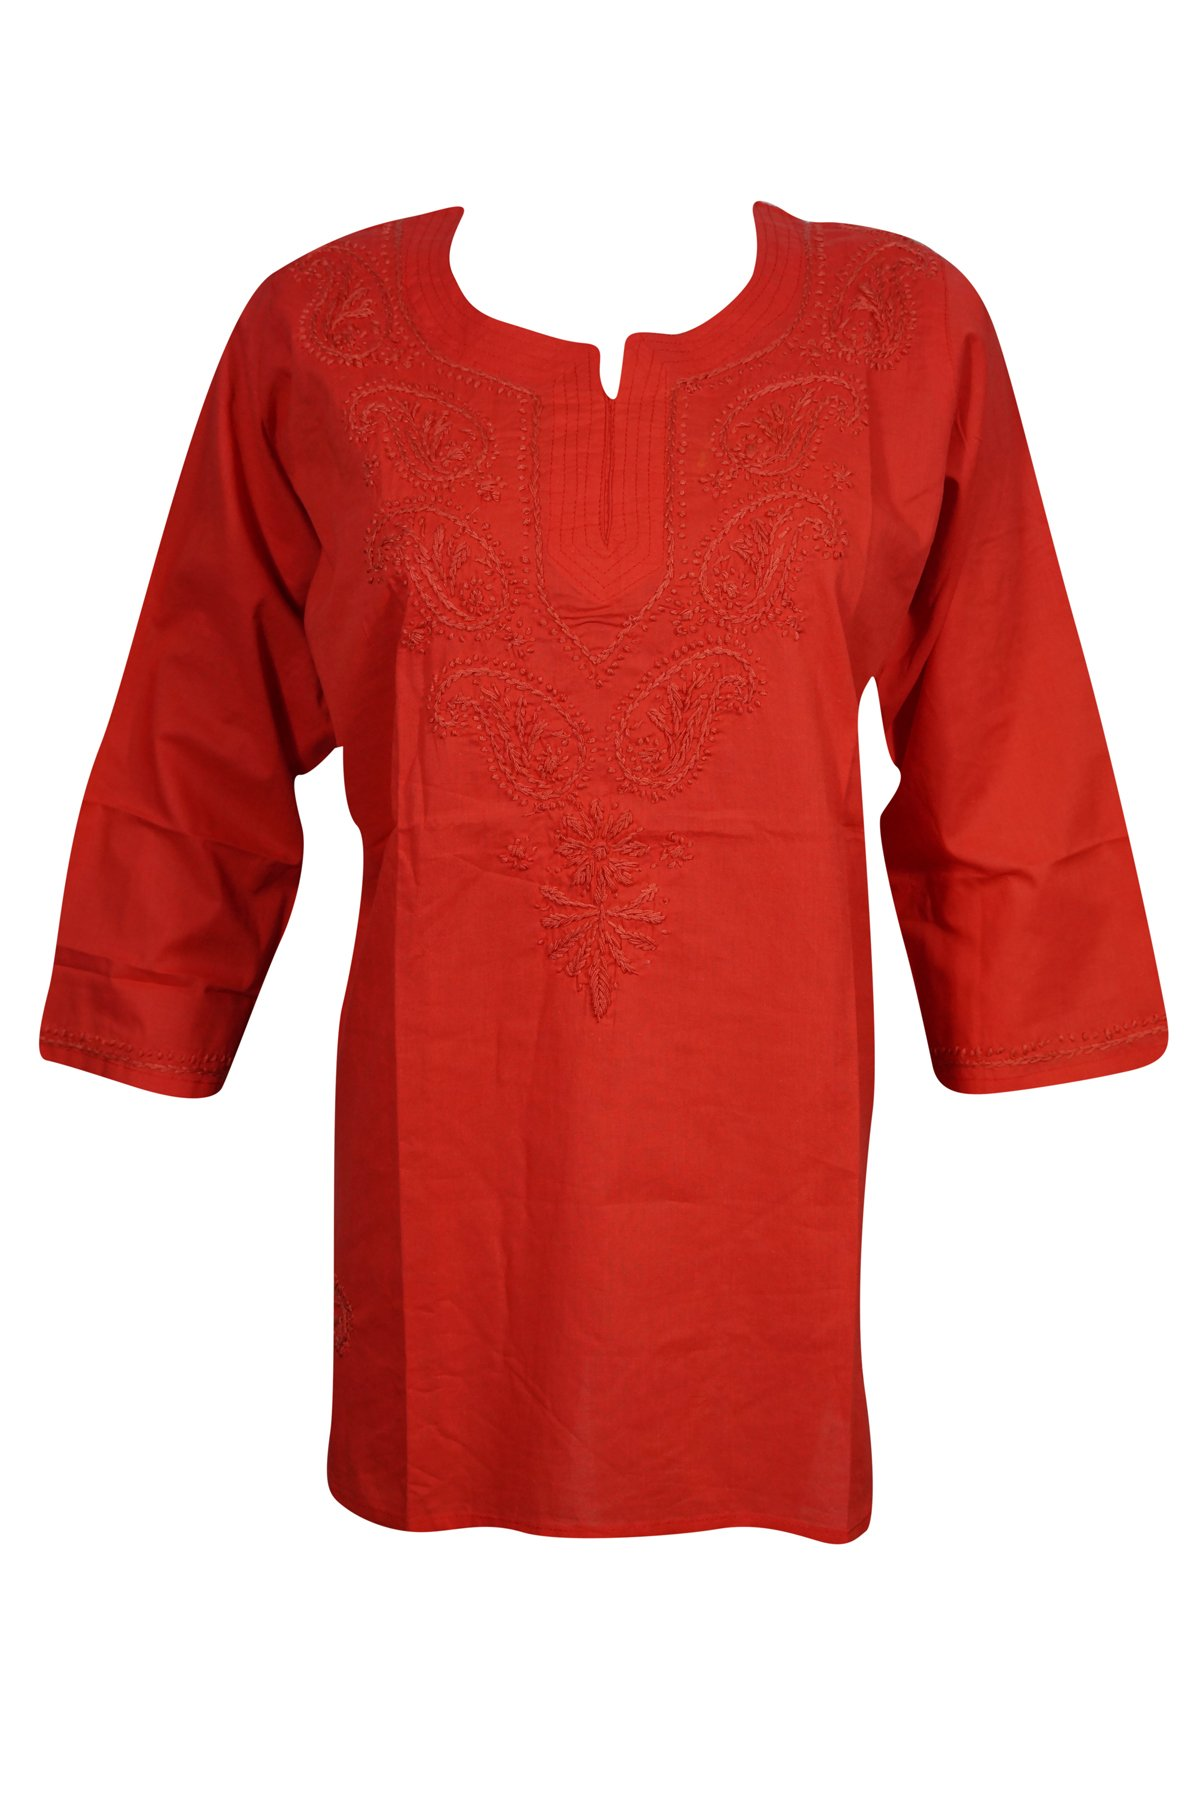 Mogul Interior Womens Tunic Top Cotton Chikan Floral Embroidered Bohemian India Kurta S